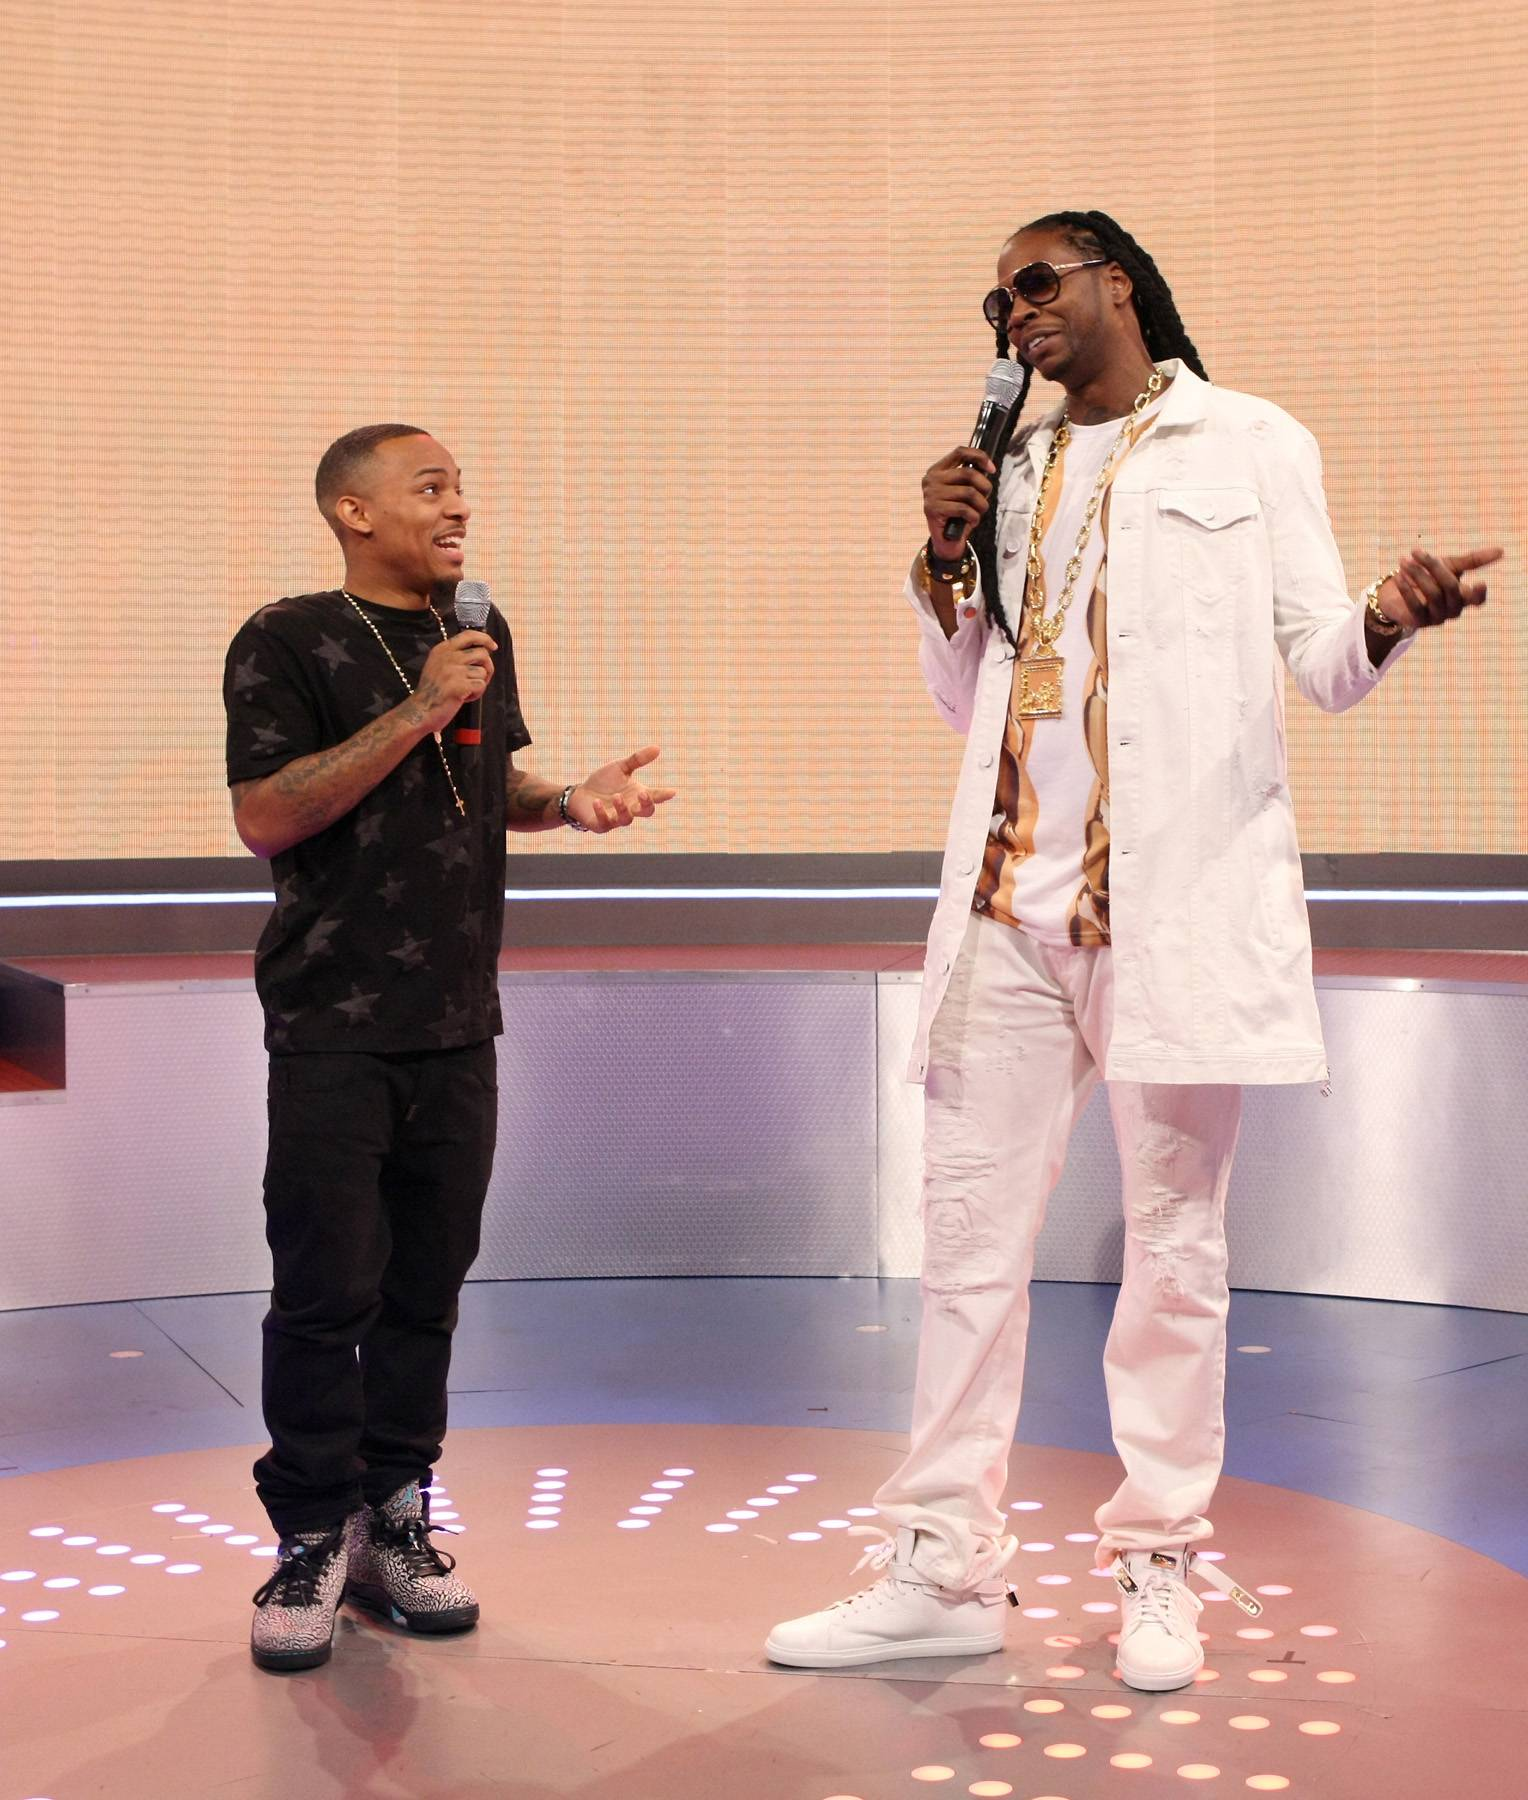 The Height Game - Bow Wow seems to want to challenge everyone to a height contest. (Photo: Bennett Raglin/BET/Getty Images for BET)